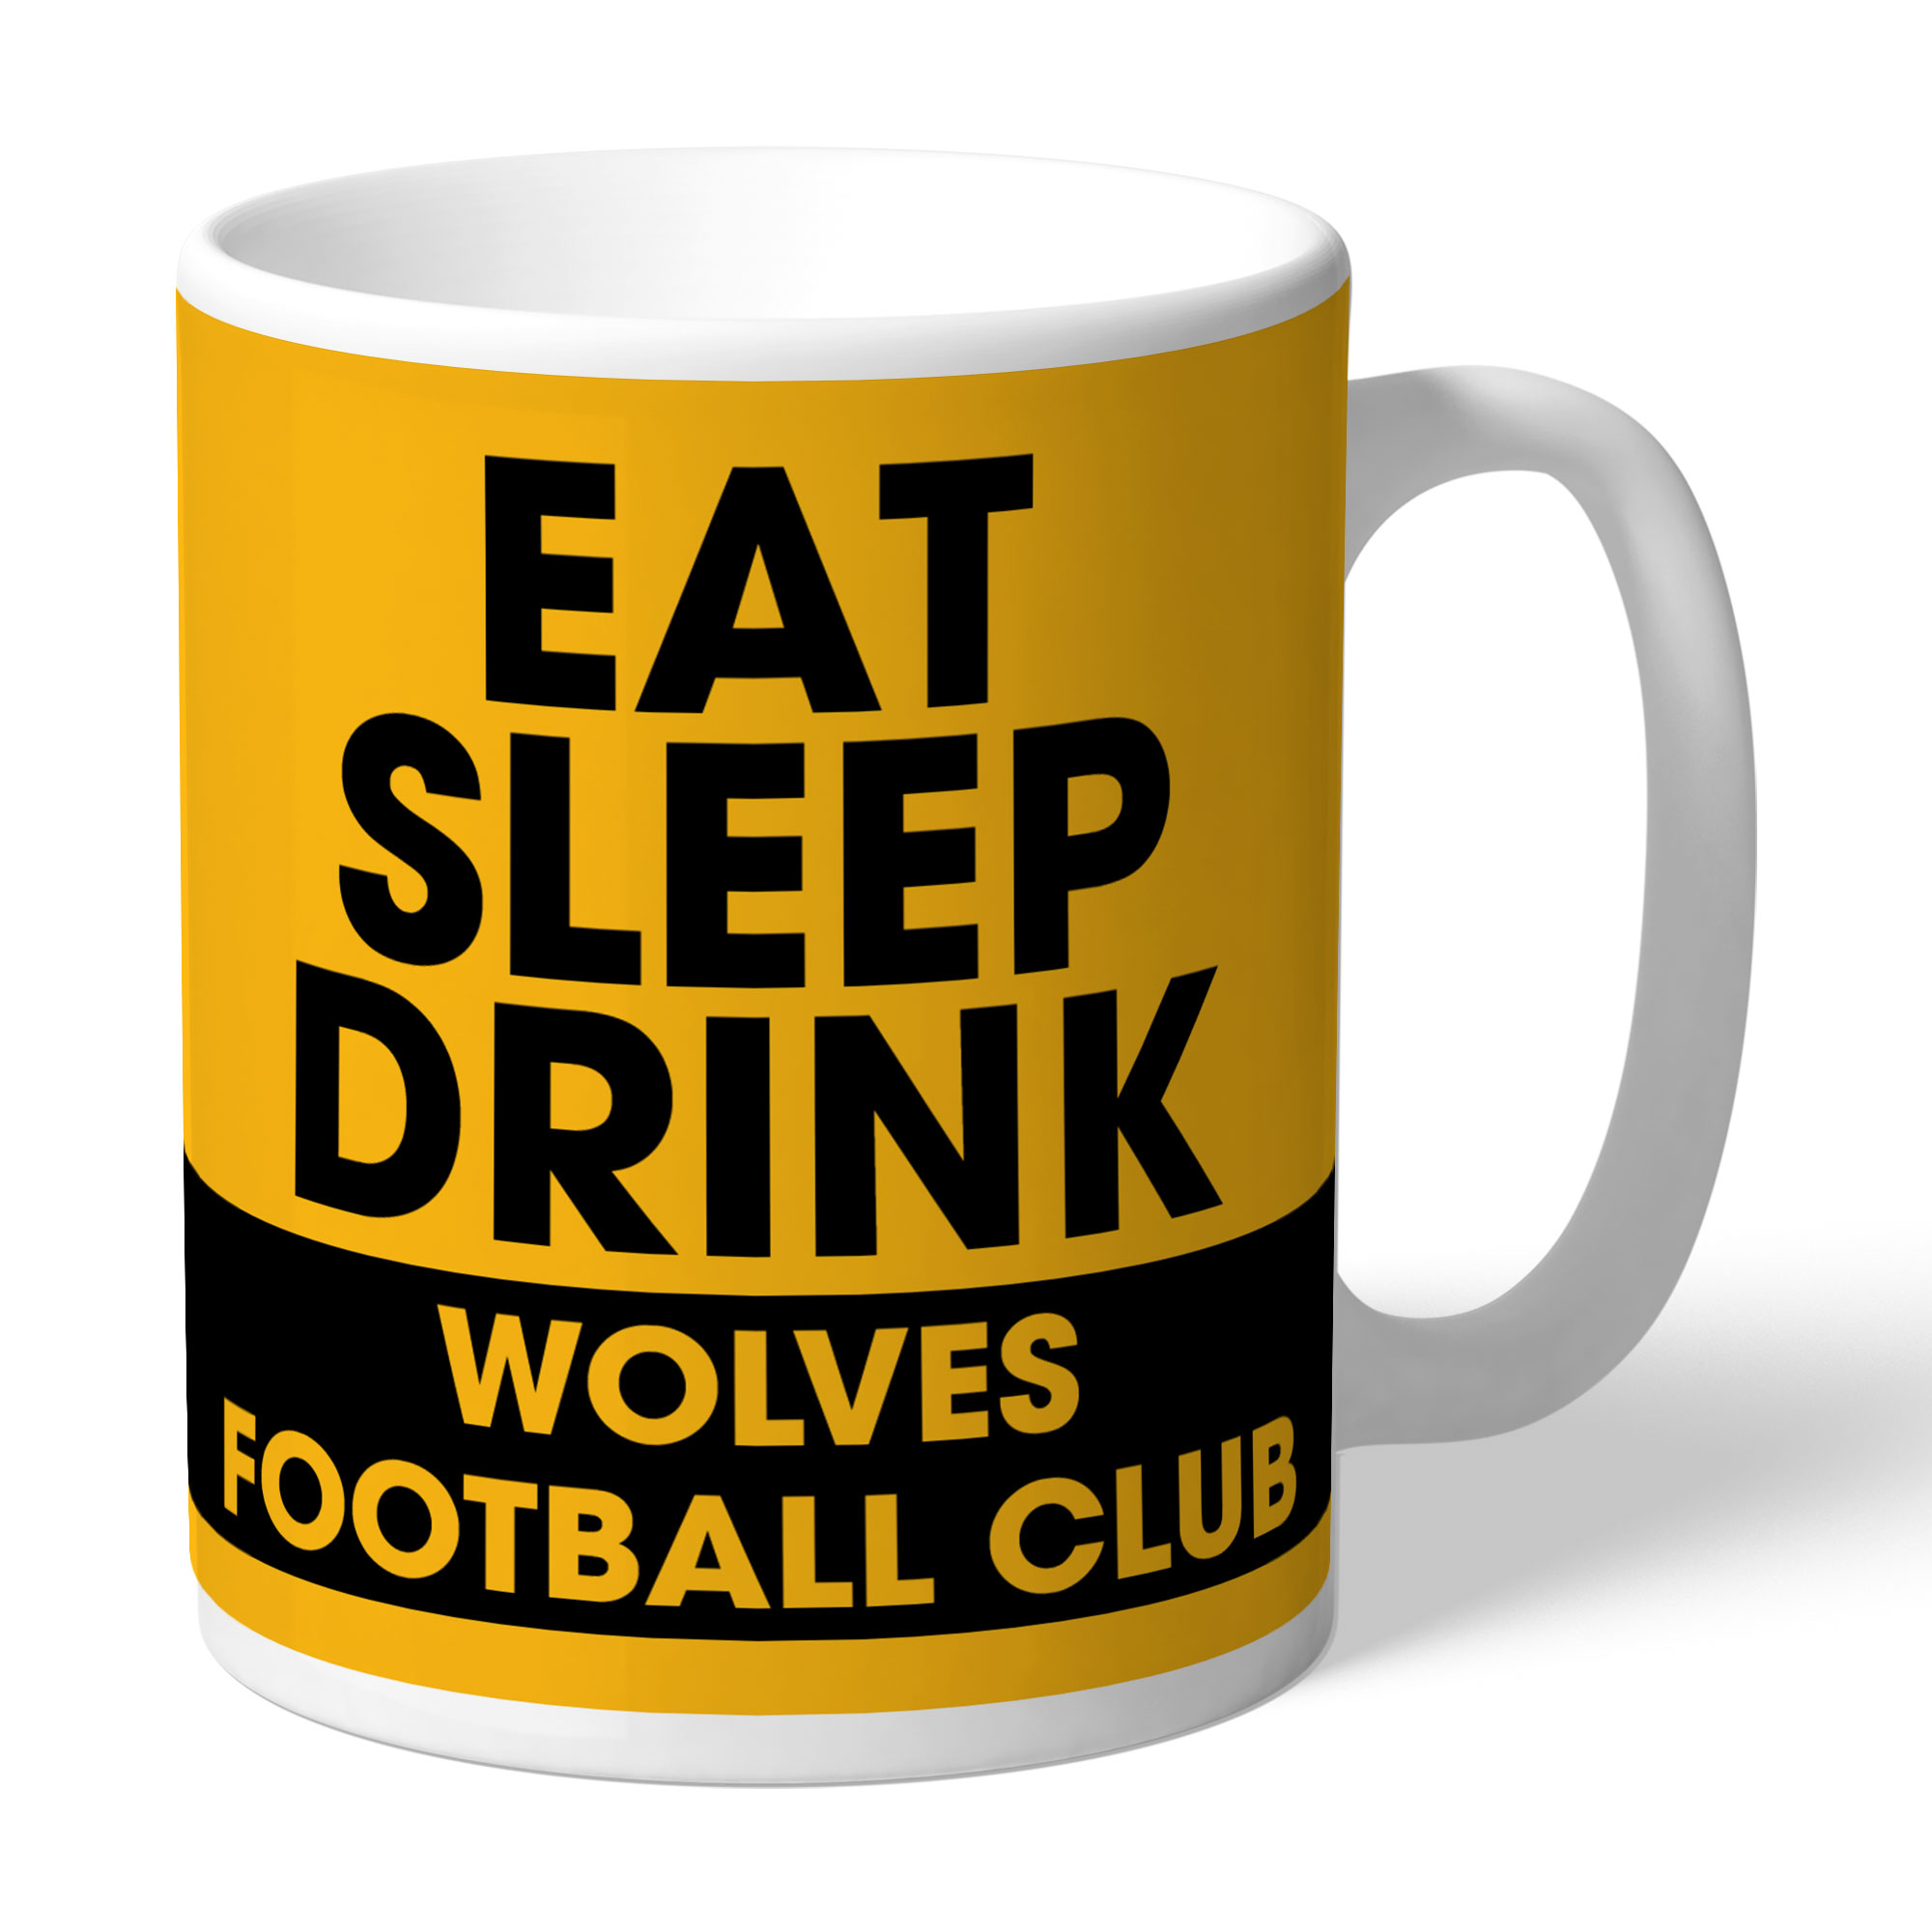 Wolves Eat Sleep Drink Mug